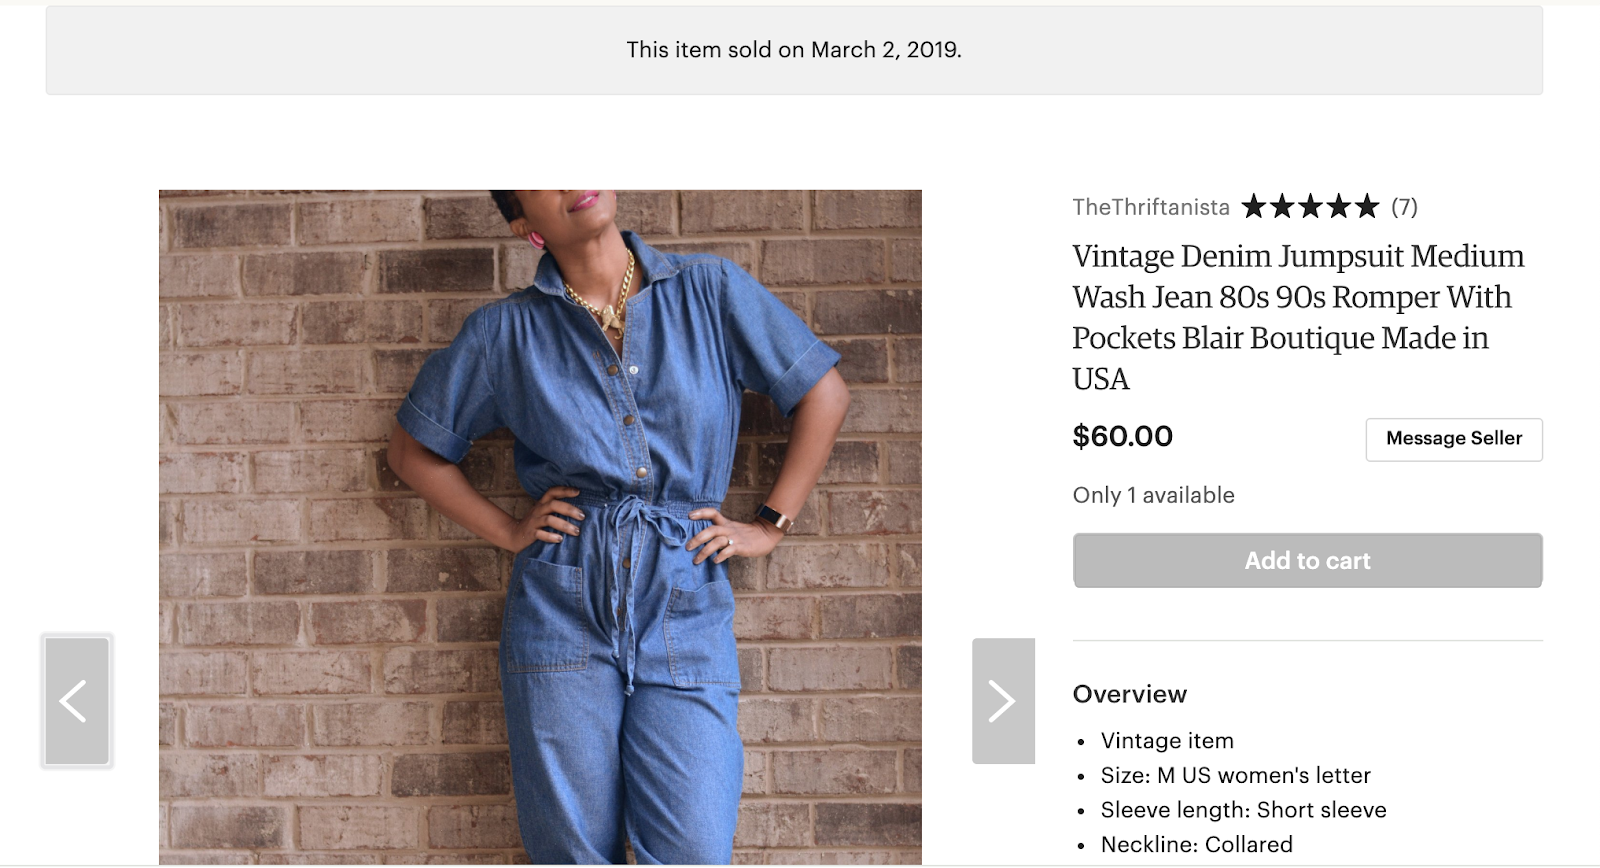 flipping thrift store finds on ebay, poshmark, and etsy